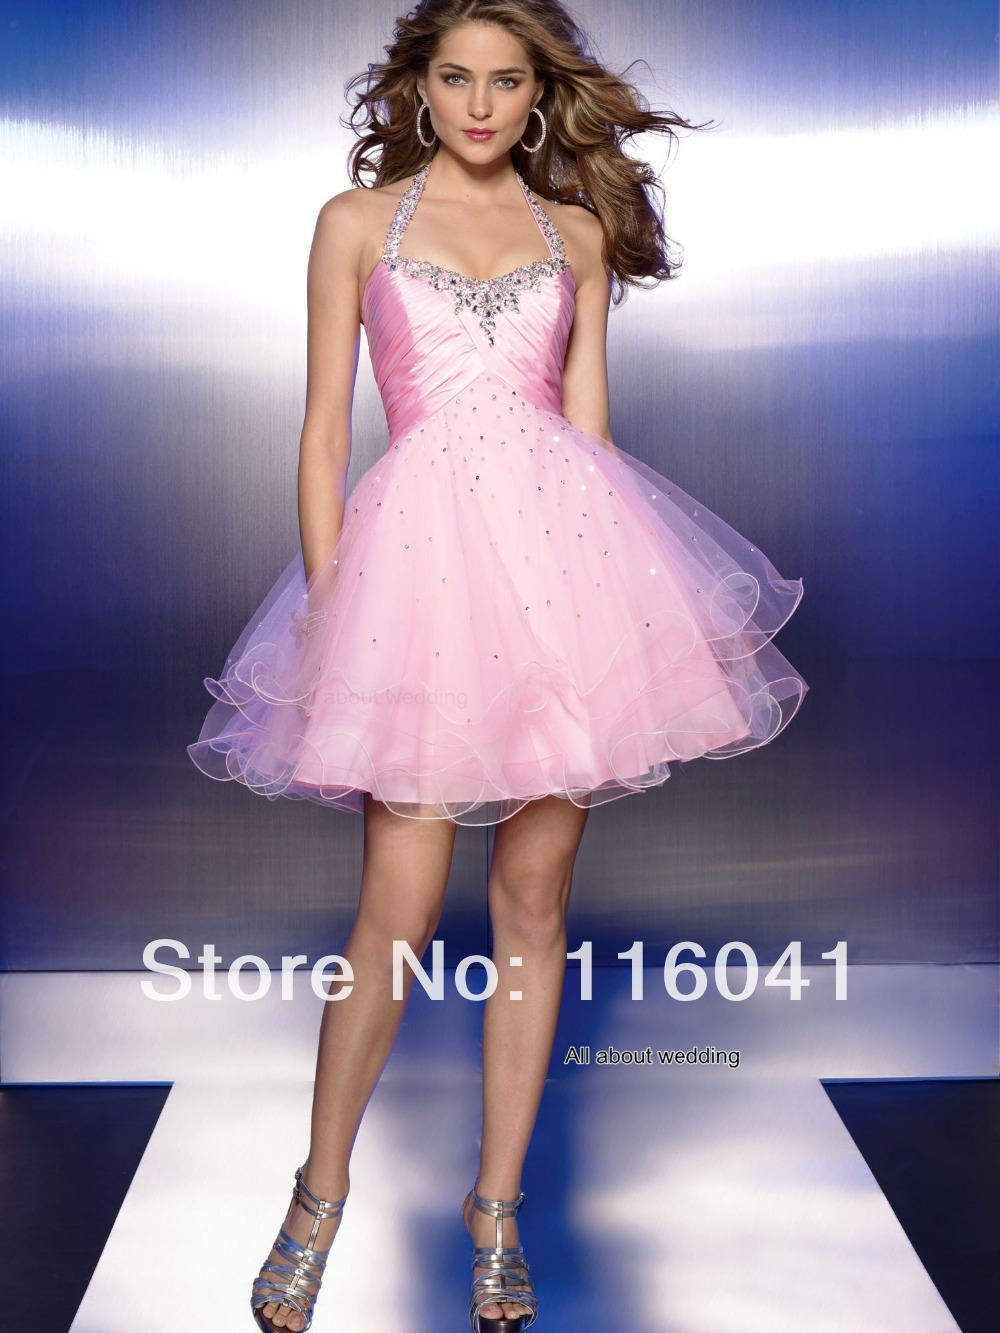 Turmec » non strapless prom dresses uk